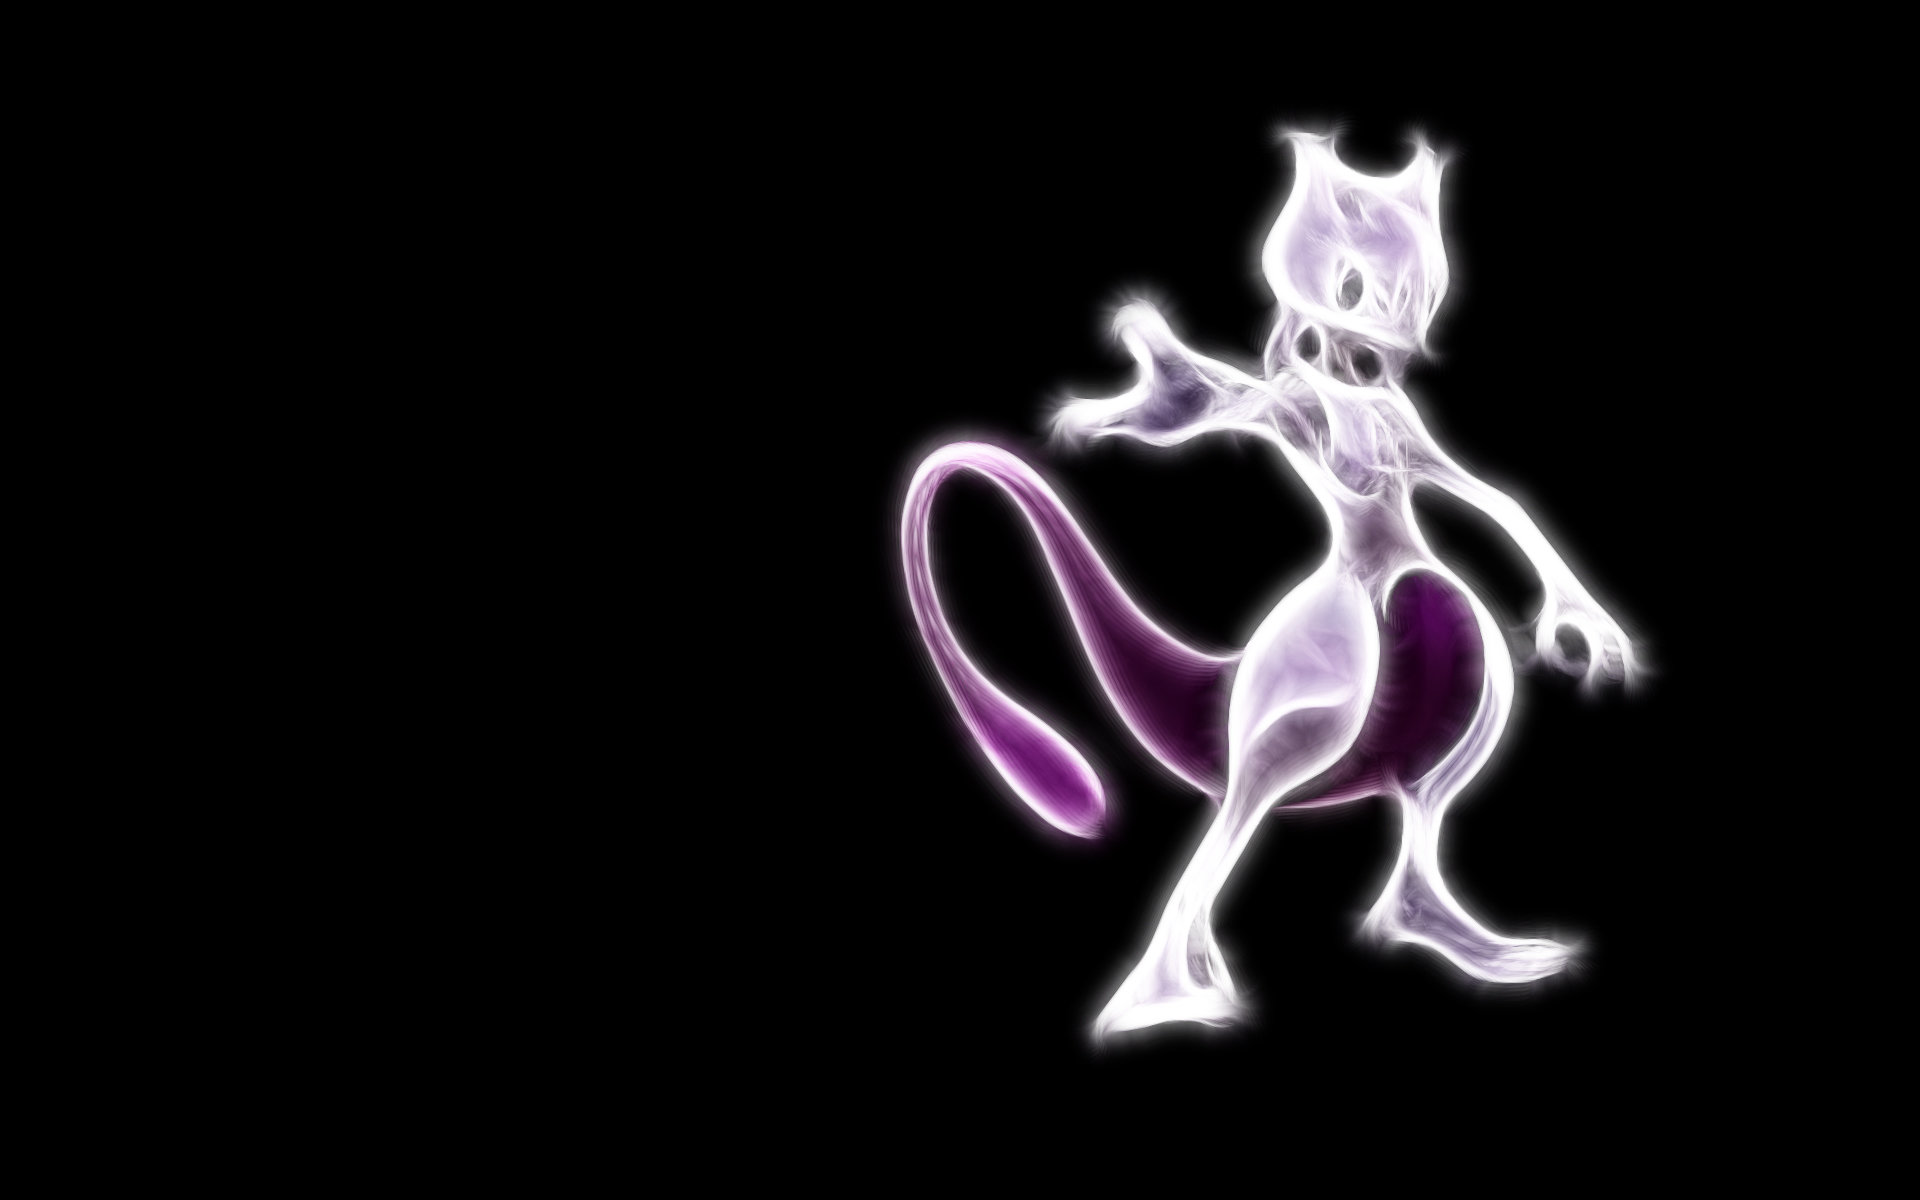 High resolution Mewtwo (Pokemon) hd 1920x1200 wallpaper ID:280090 for computer